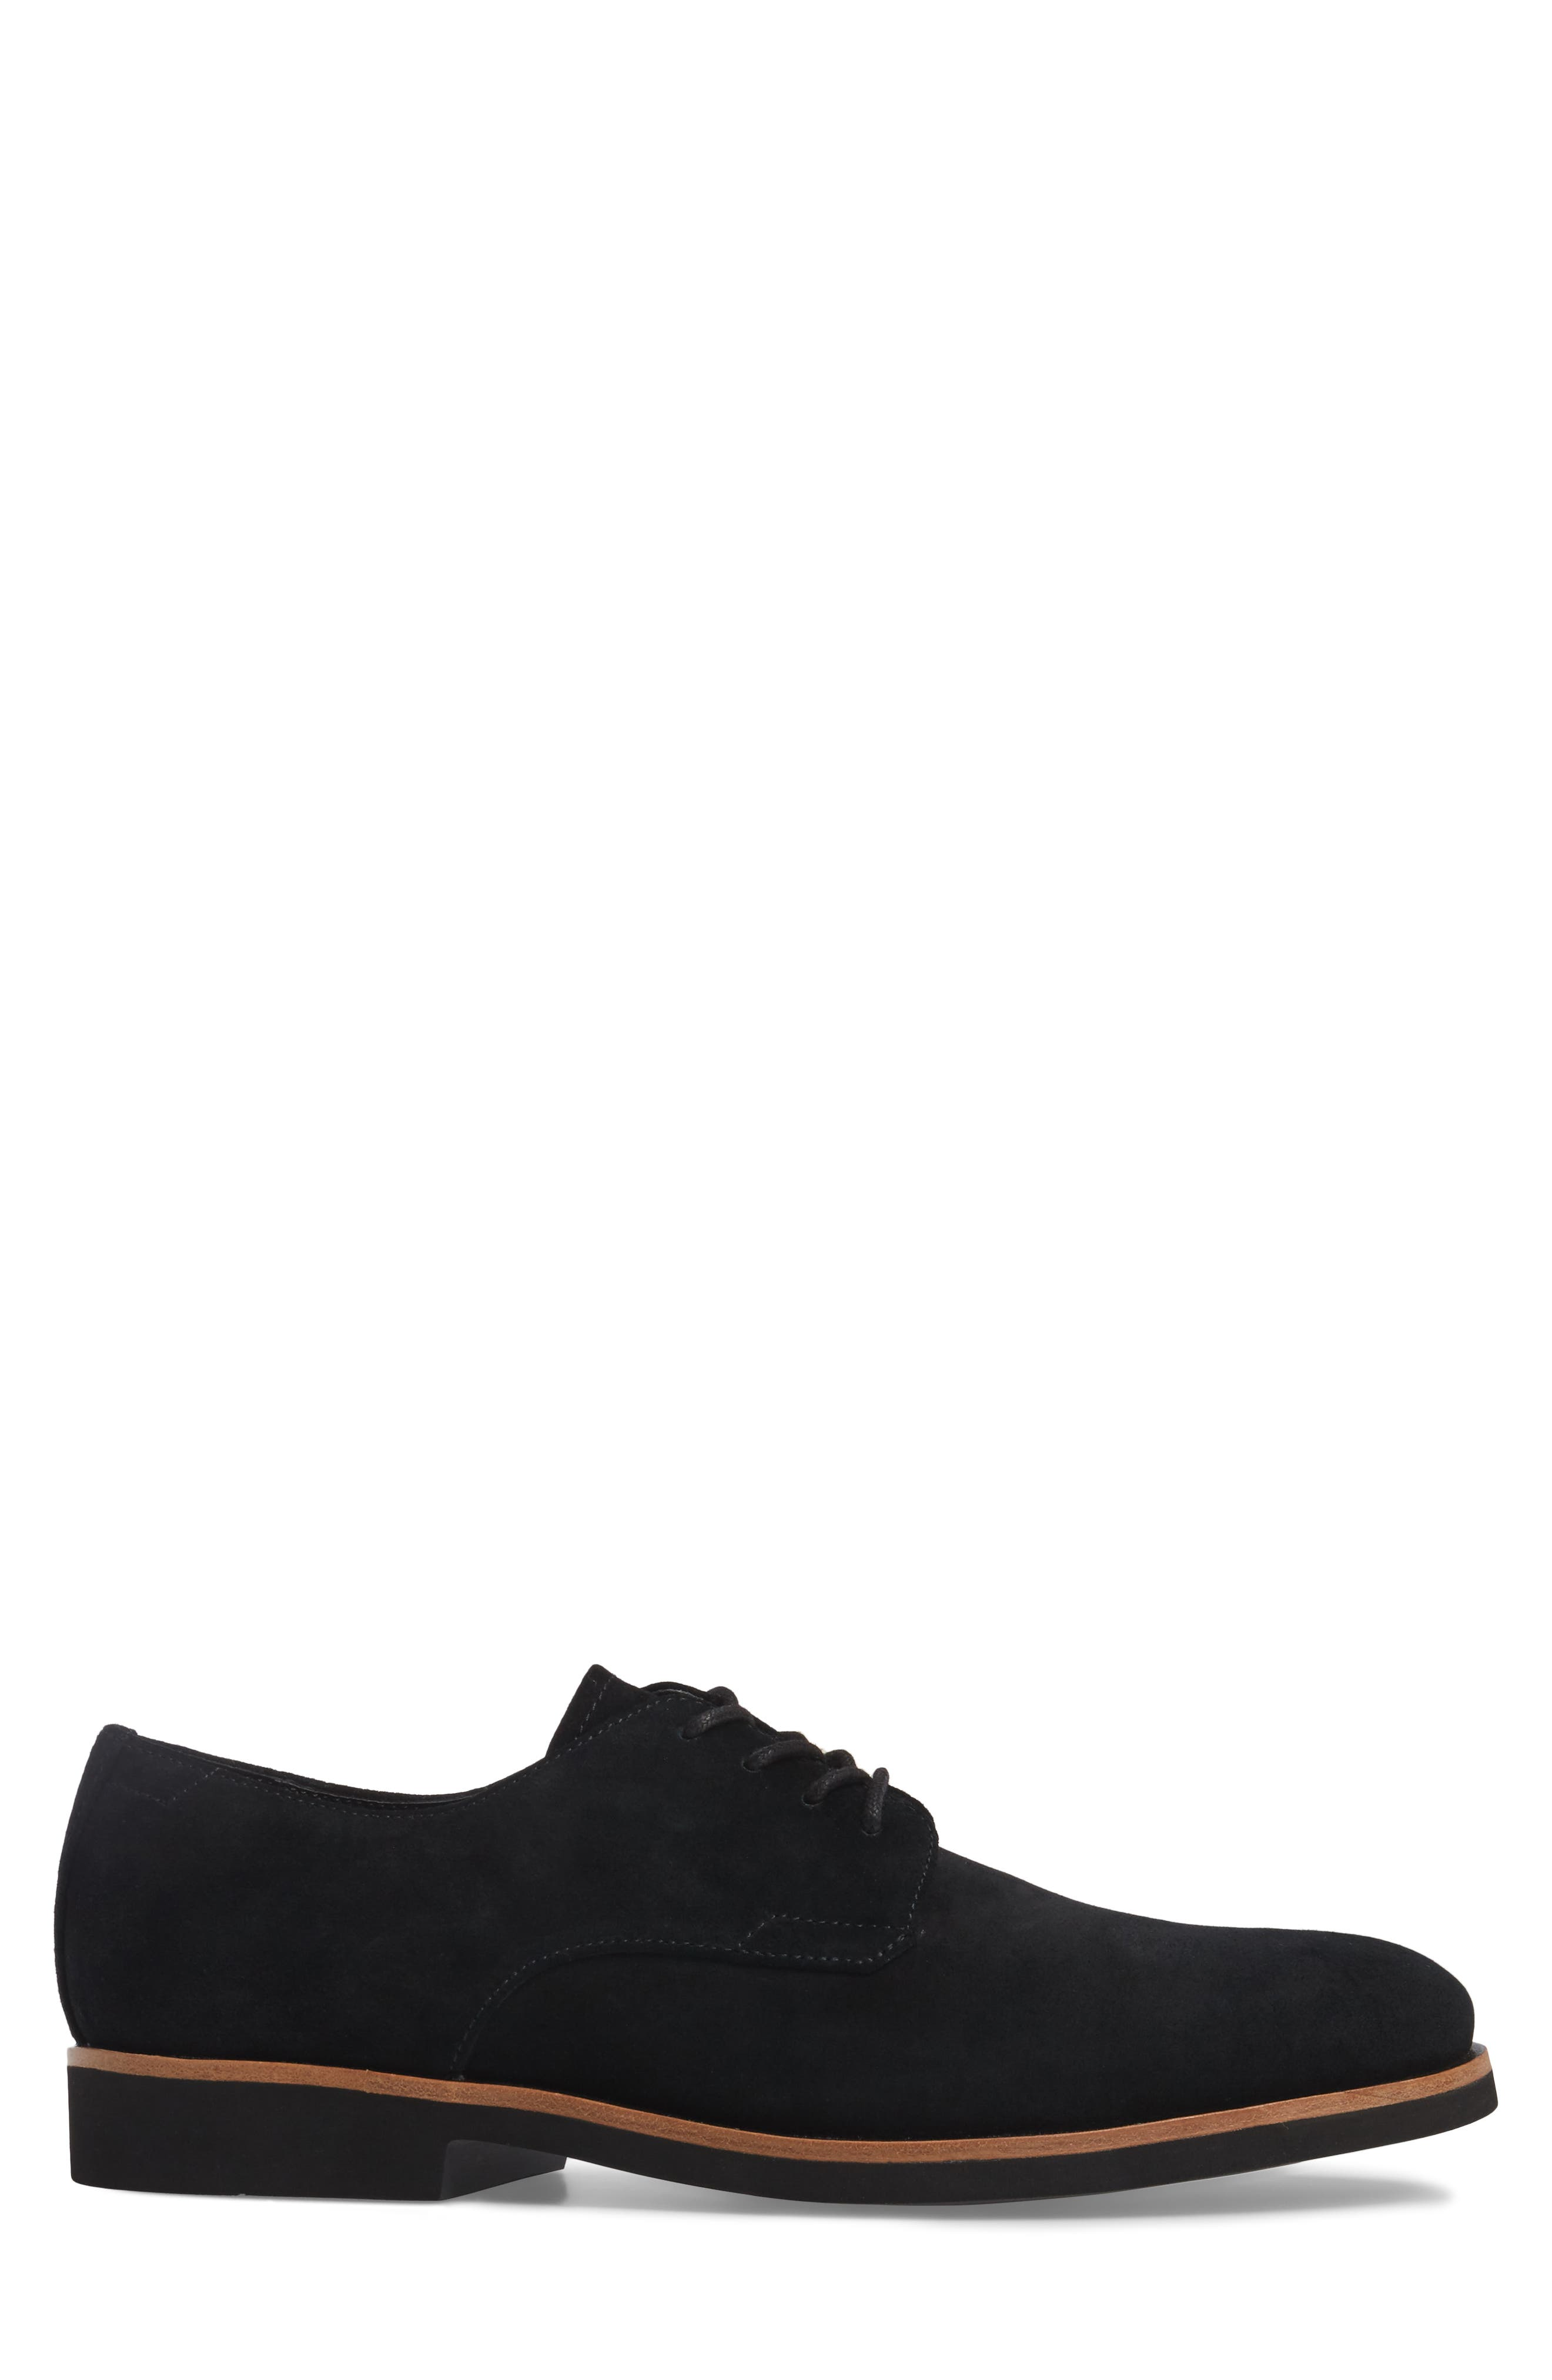 Faustino Plain Toe Derby,                             Alternate thumbnail 3, color,                             Black Suede